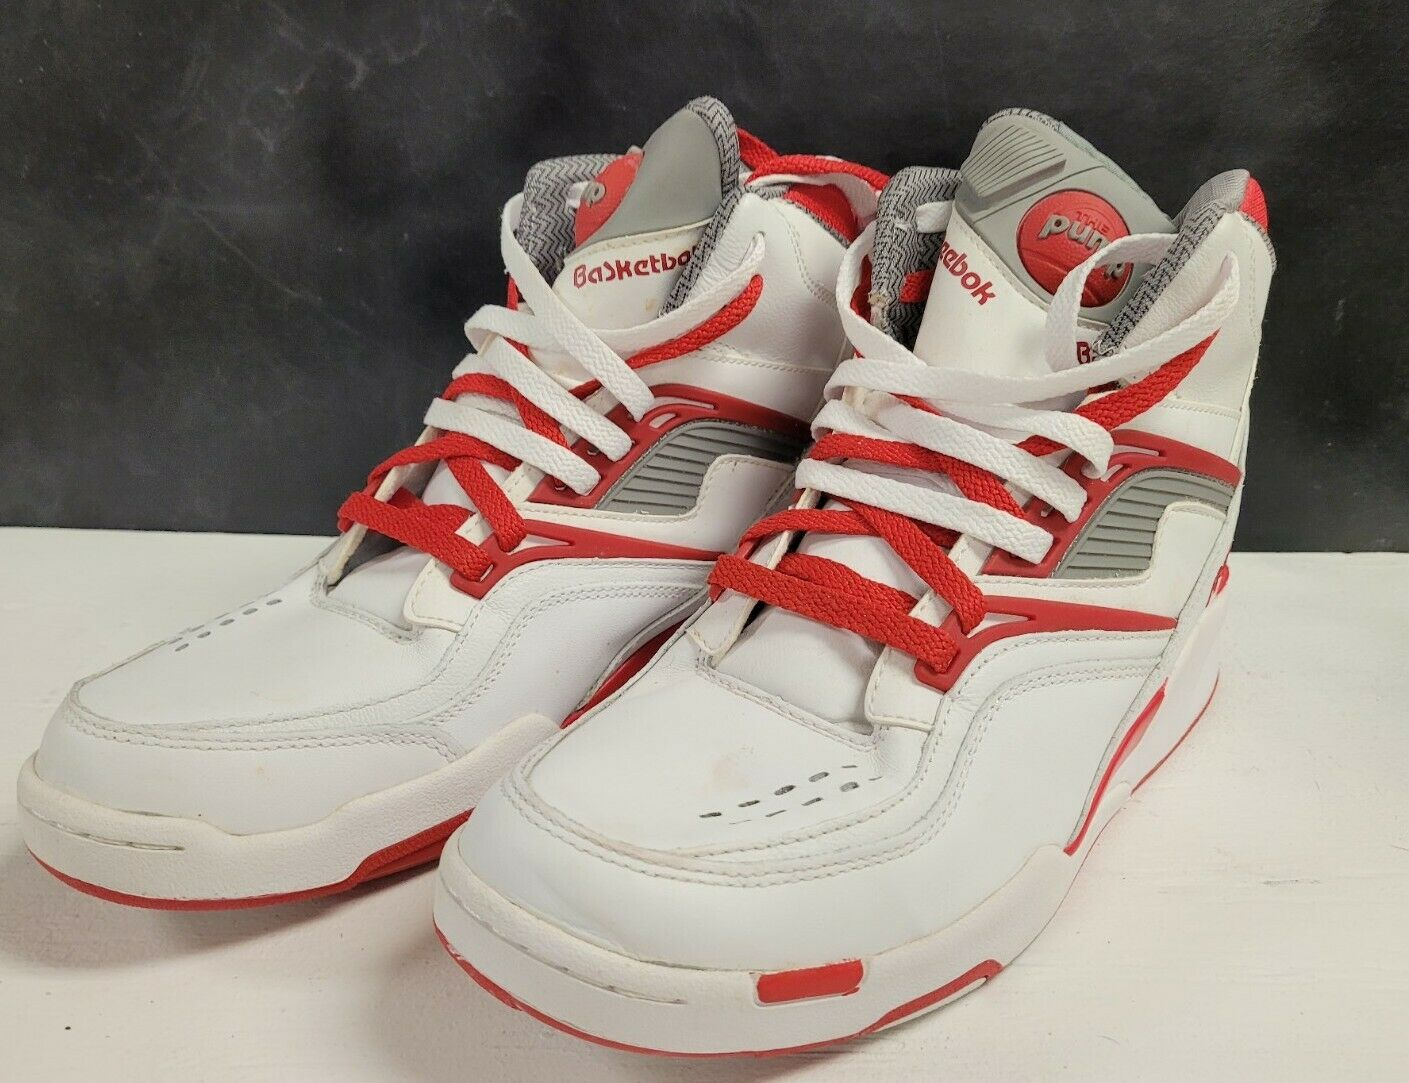 Vintage Men's Reebok Pump Basketball Shoes Size 11 US White and Red on eBay thumbnail